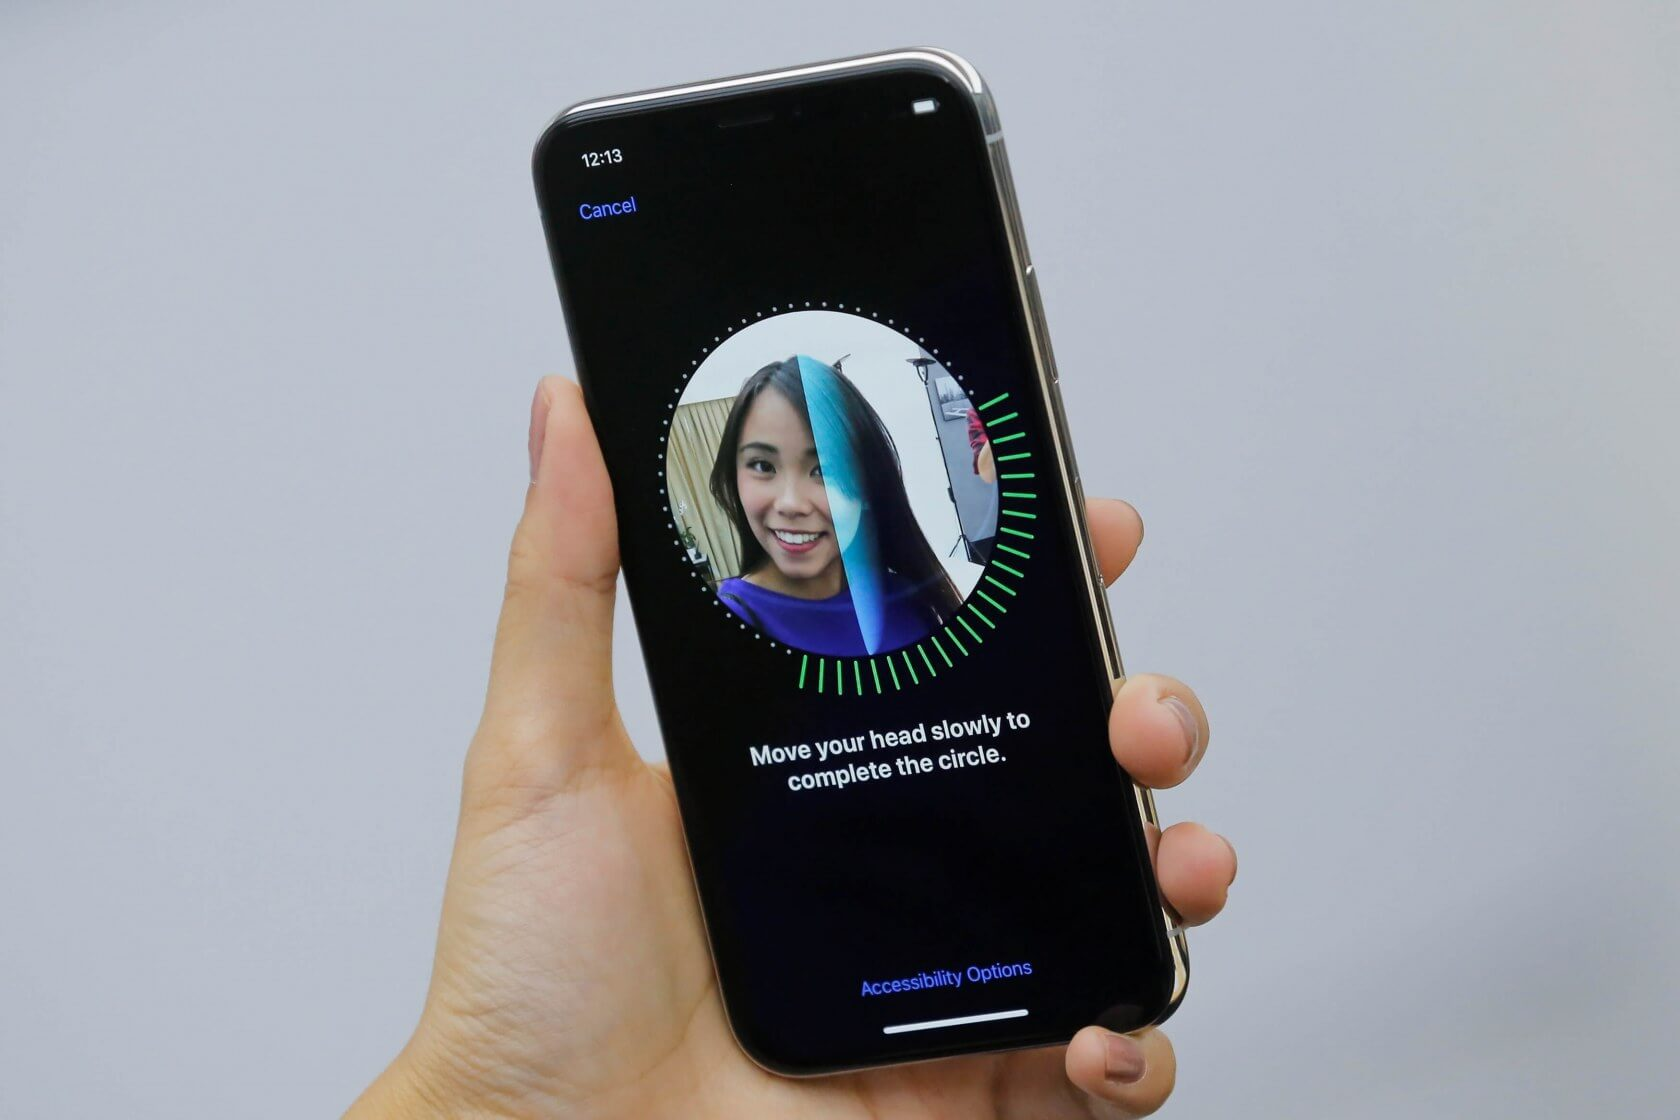 Apple memo indicates iPhone X is having some issues with Face ID